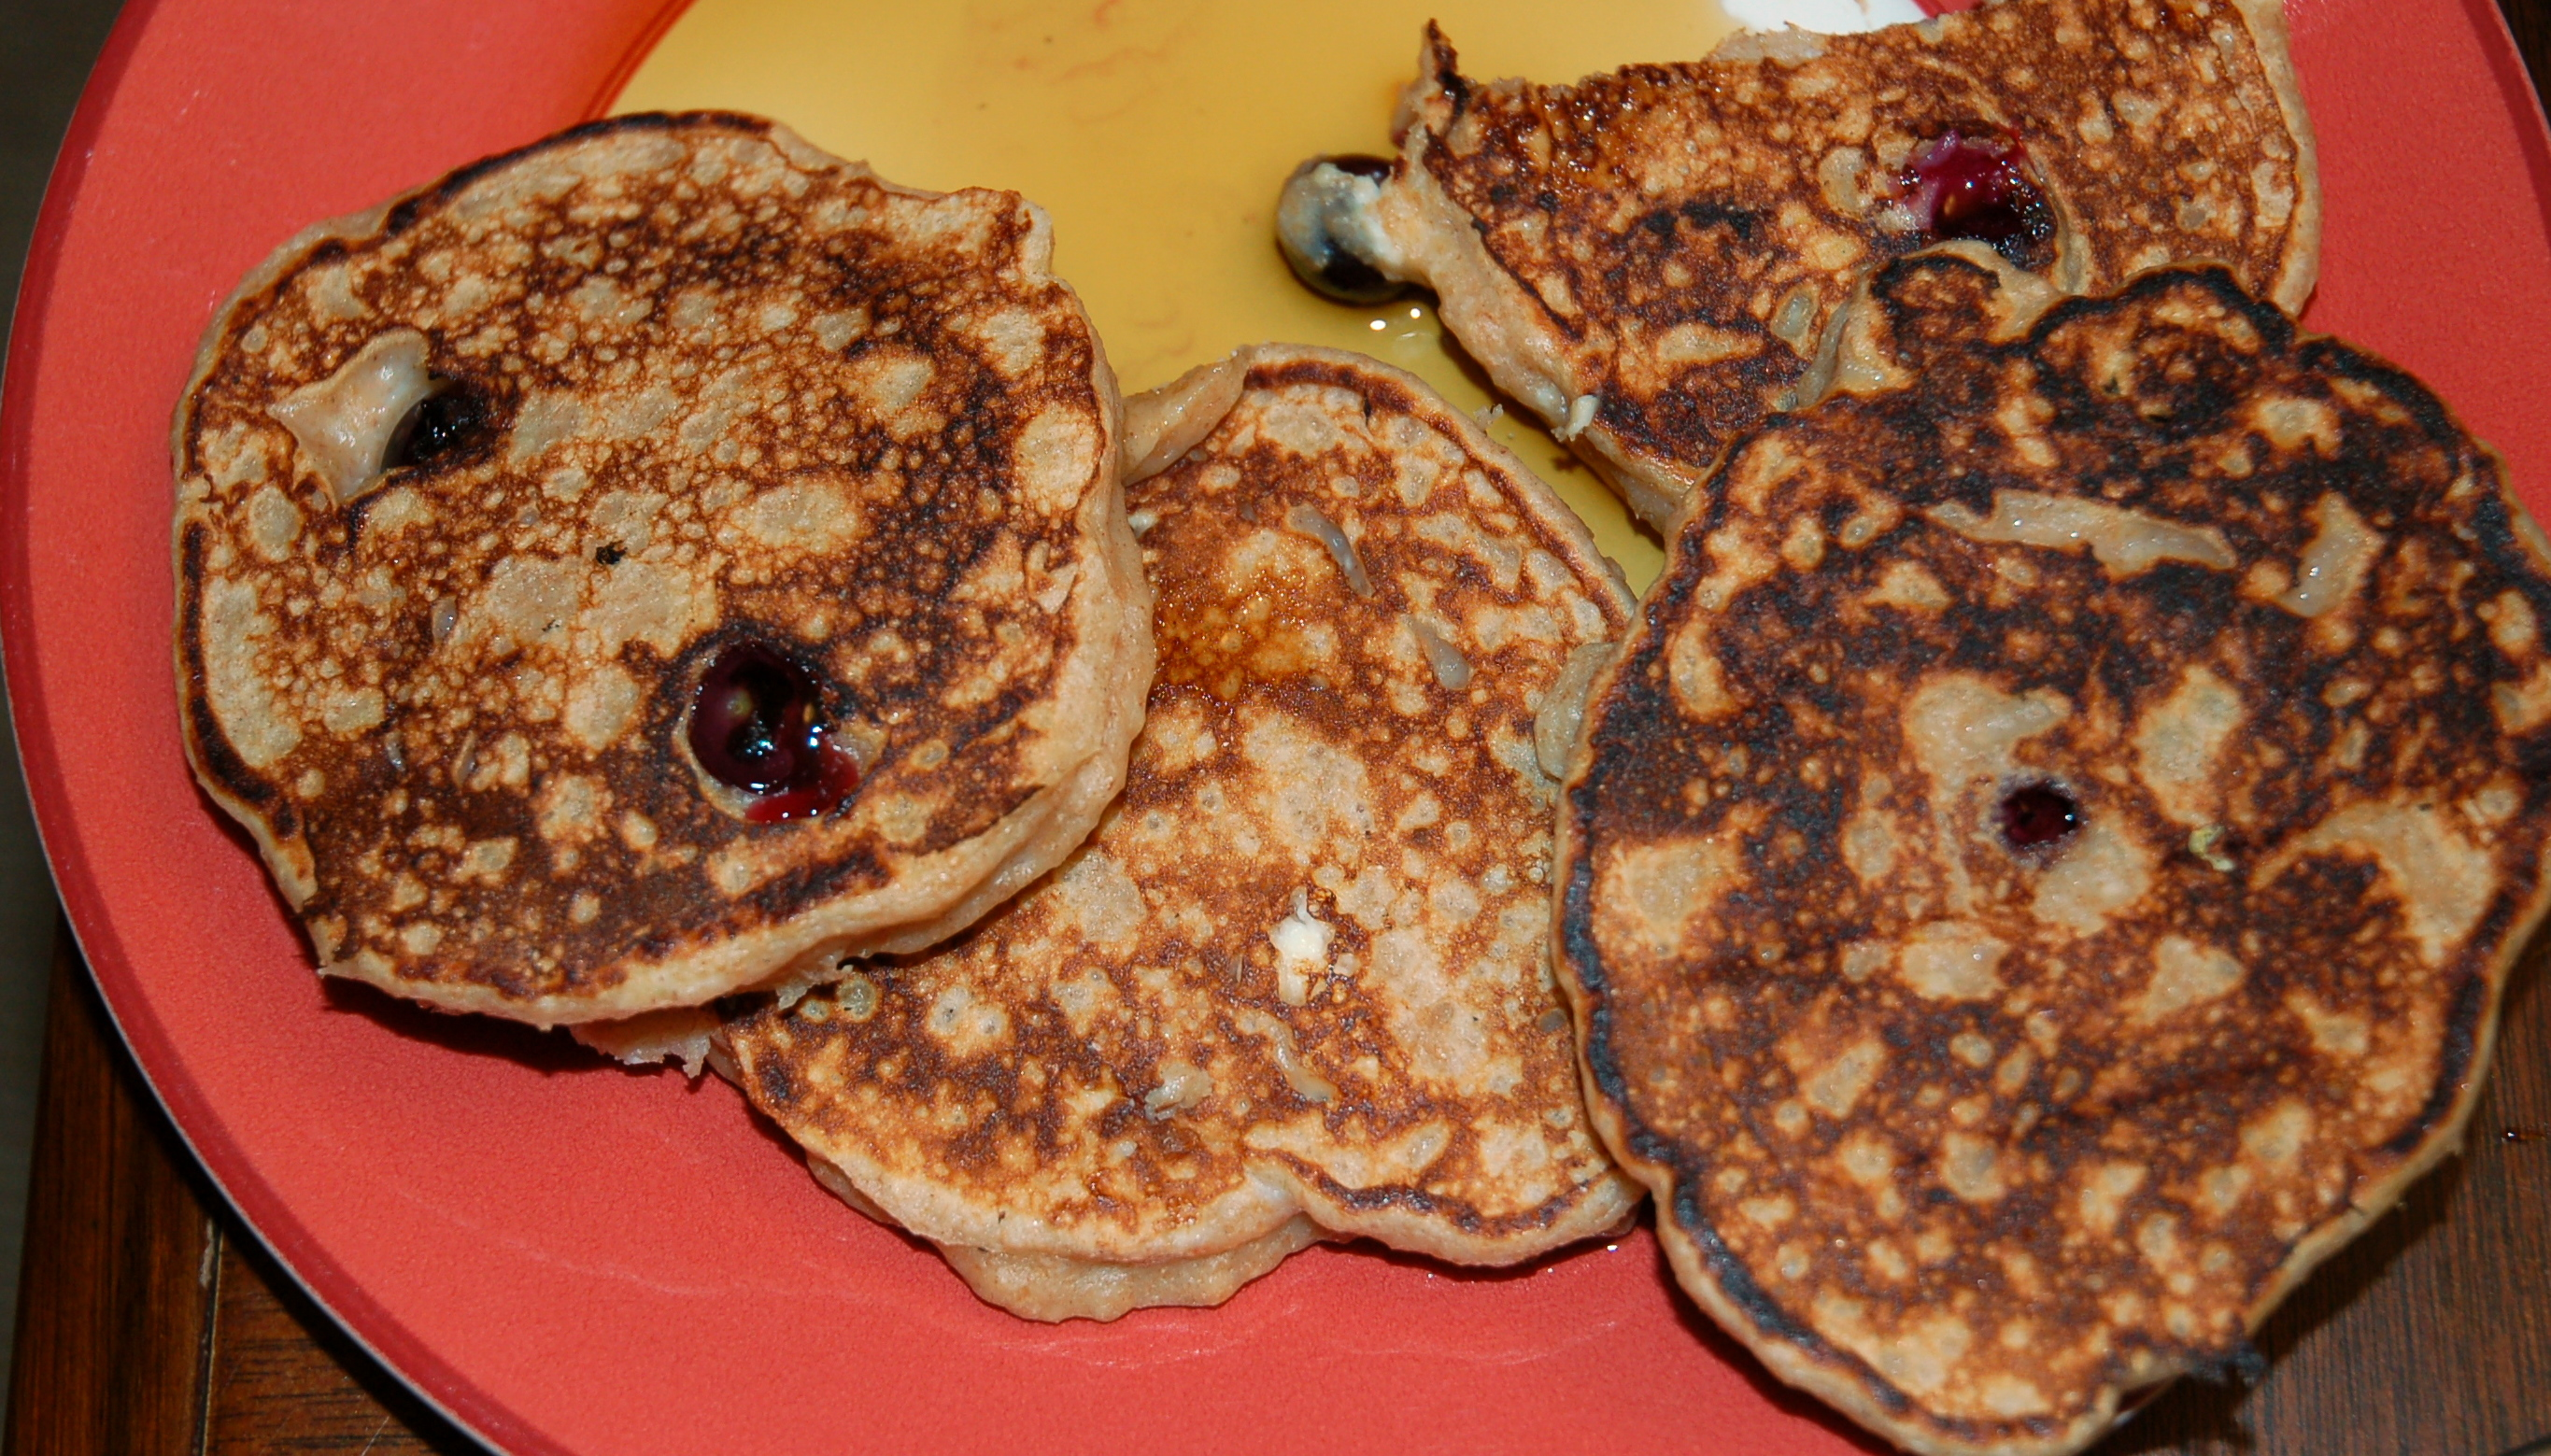 Whole-wheat Lemon-Blueberry-Ricotta pancakes